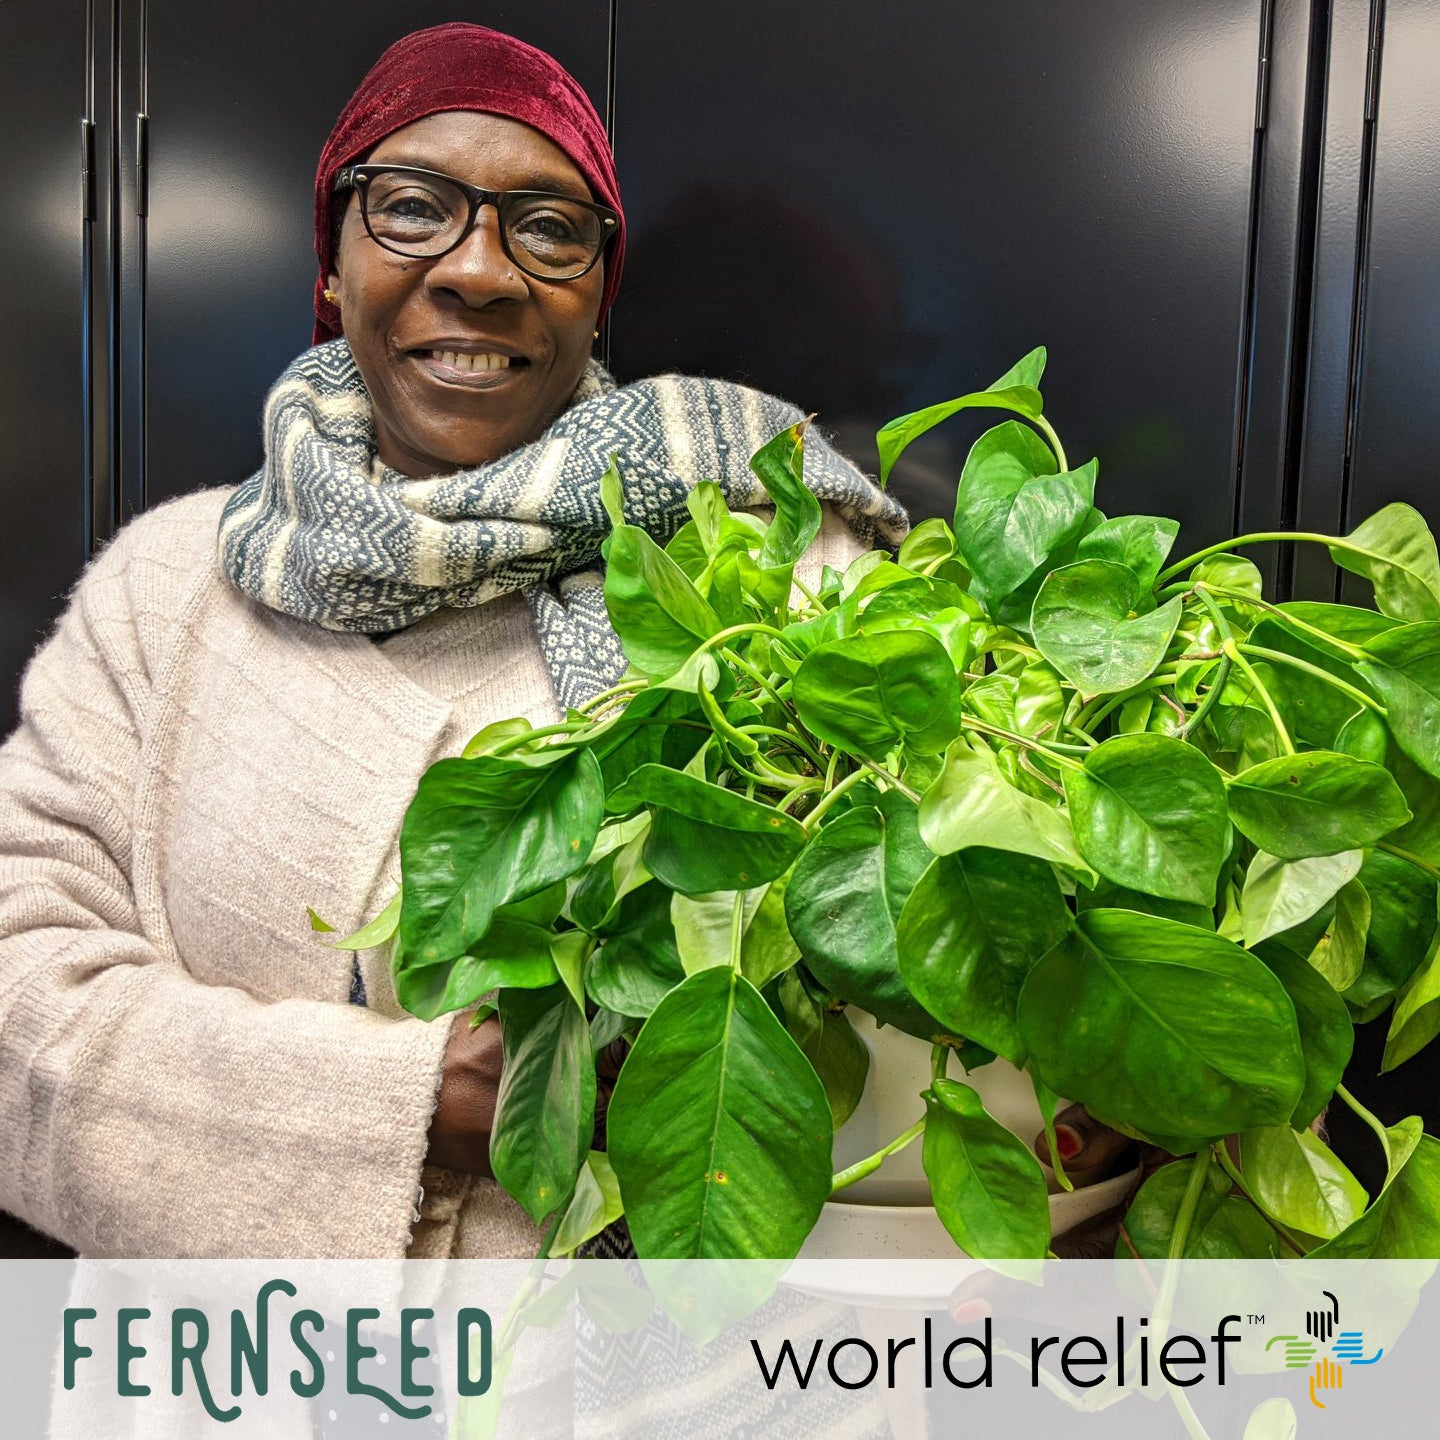 Donation Spotlight - The Fernseed and Seattle World Relief Foundation